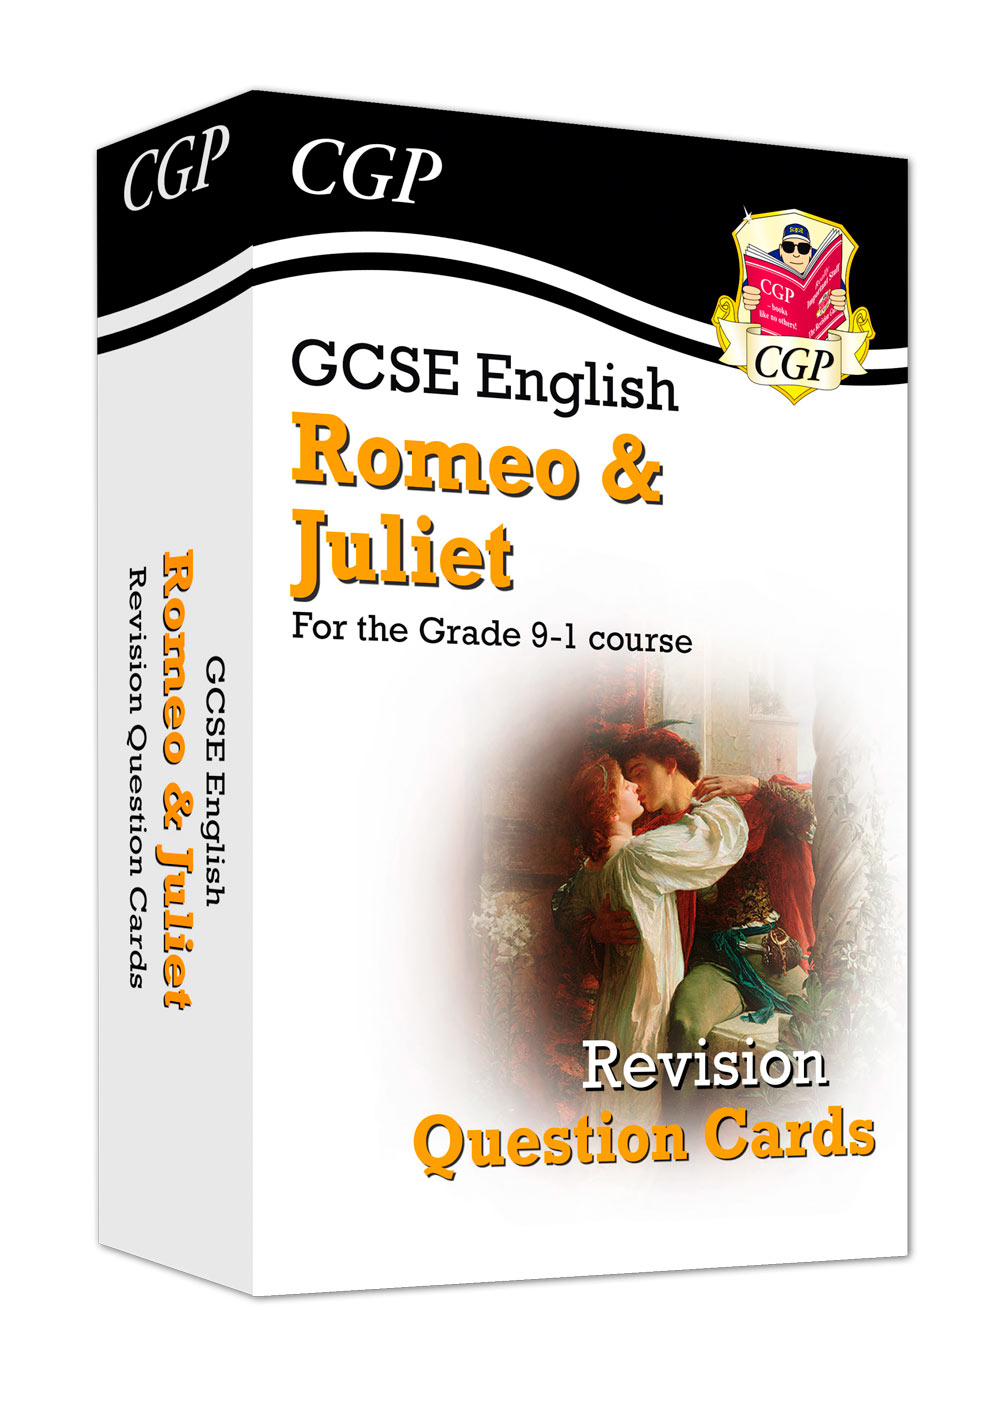 ETFR41 - New Grade 9-1 GCSE English Shakespeare - Romeo & Juliet Revision Question Cards